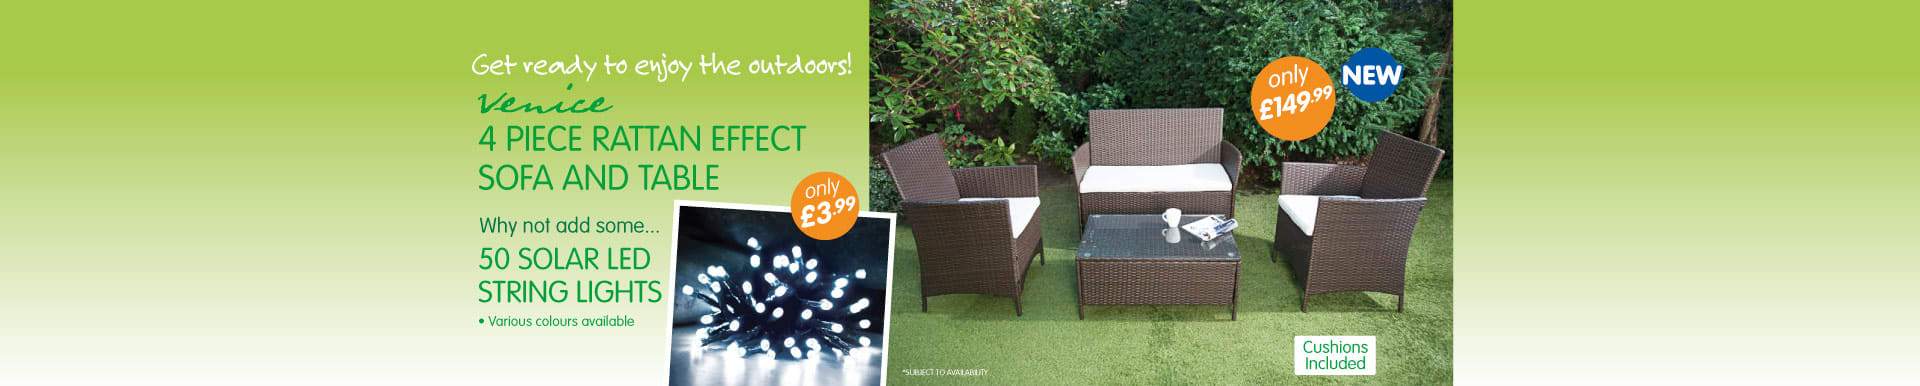 B&M Stores have a large range of garden furniture and garden solar lights at low prices.